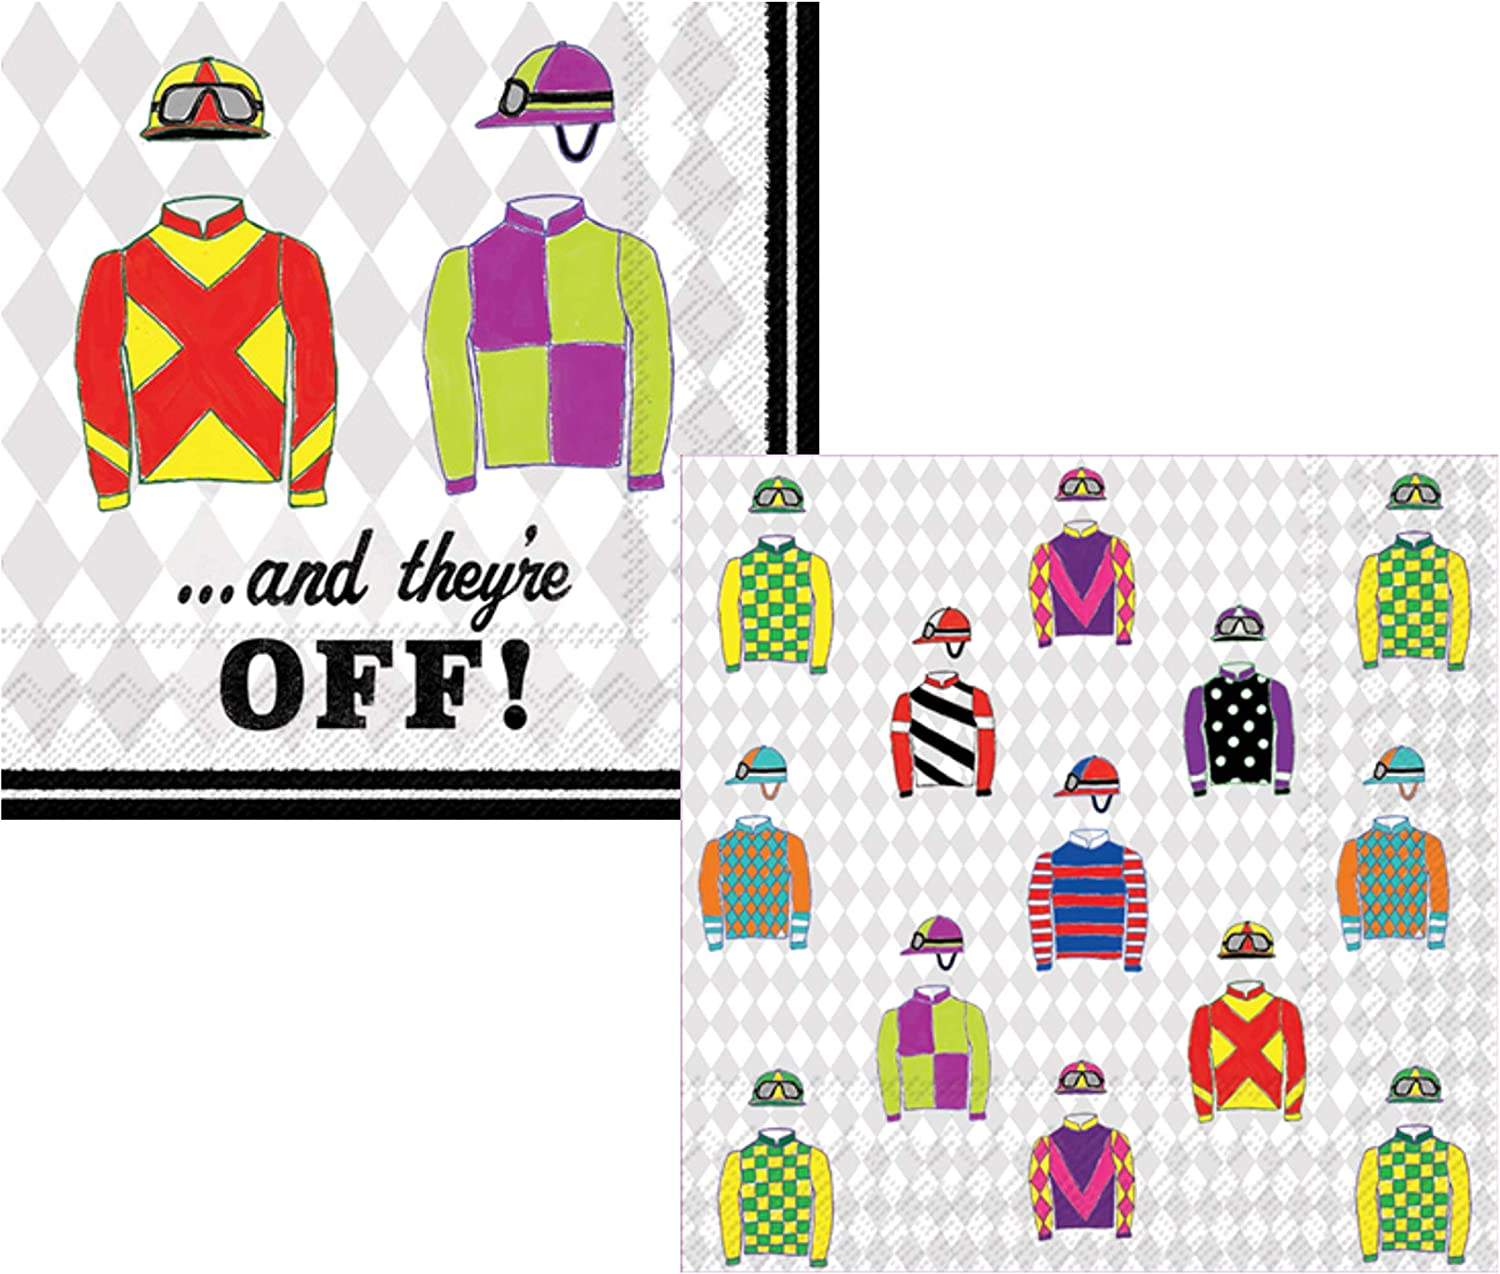 Horse Racing Derby Themed Cocktail Napkins. Bundle Includes 40 Paper Napkins in 2 Designs